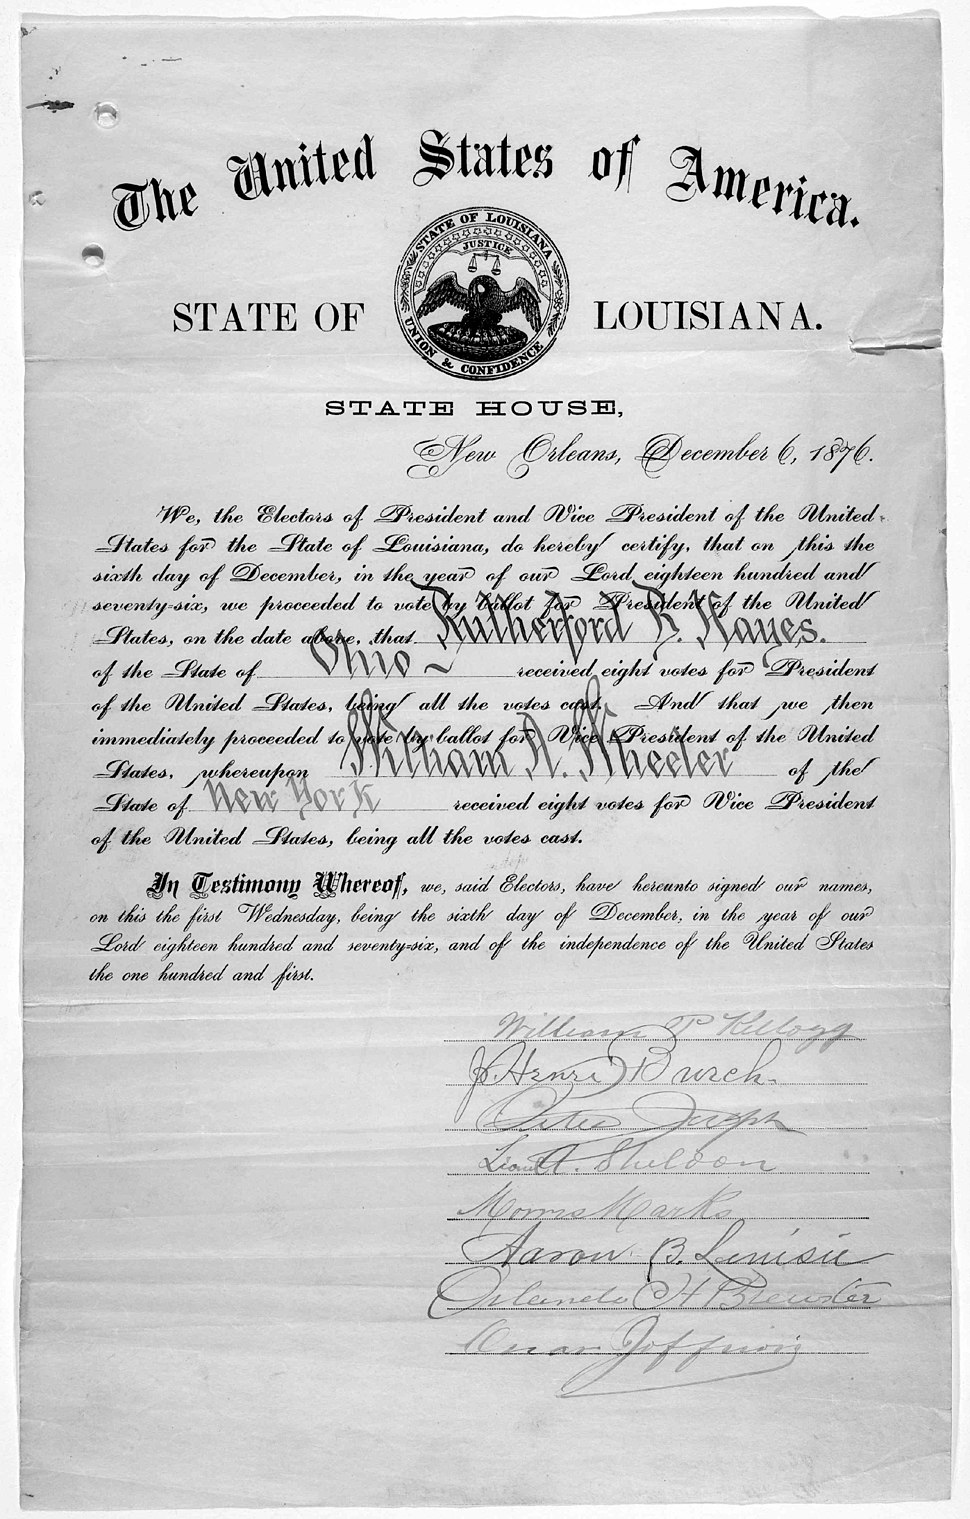 A certificate for the electoral vote for Rutherford B. Hayes and William A. Wheeler for the State of Louisiana dated 1876 part 6